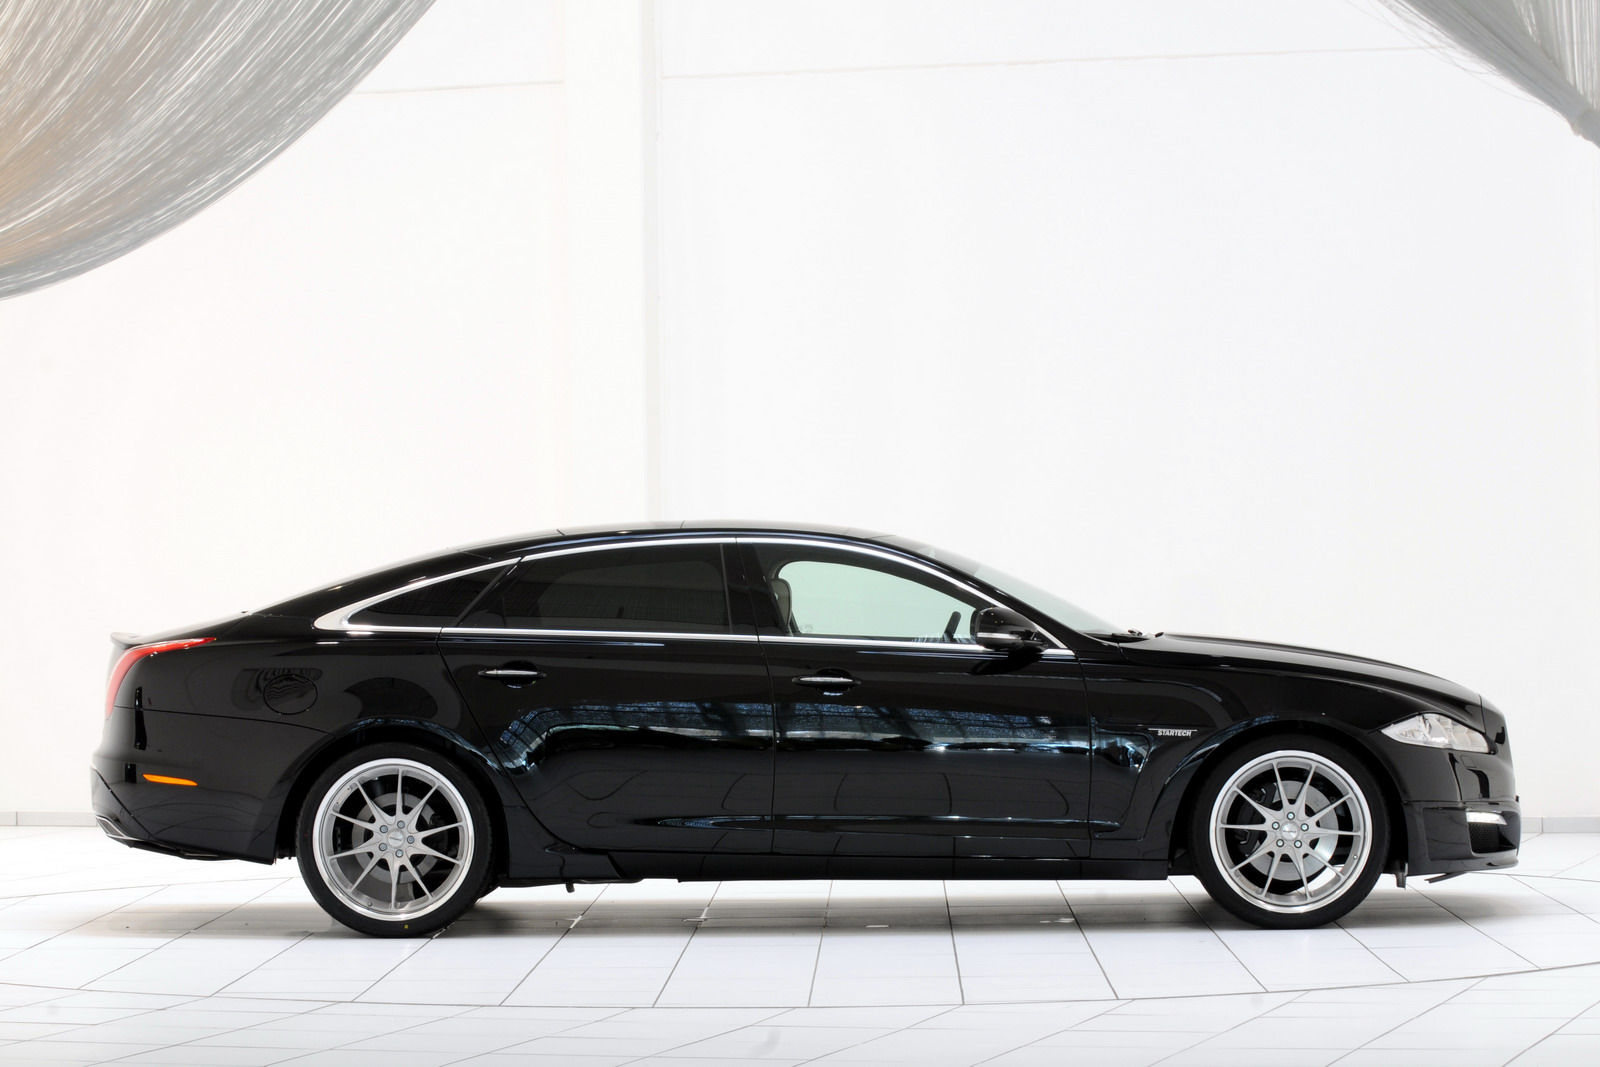 Startech Adds Style To The 2012 Jaguar XJ Limo